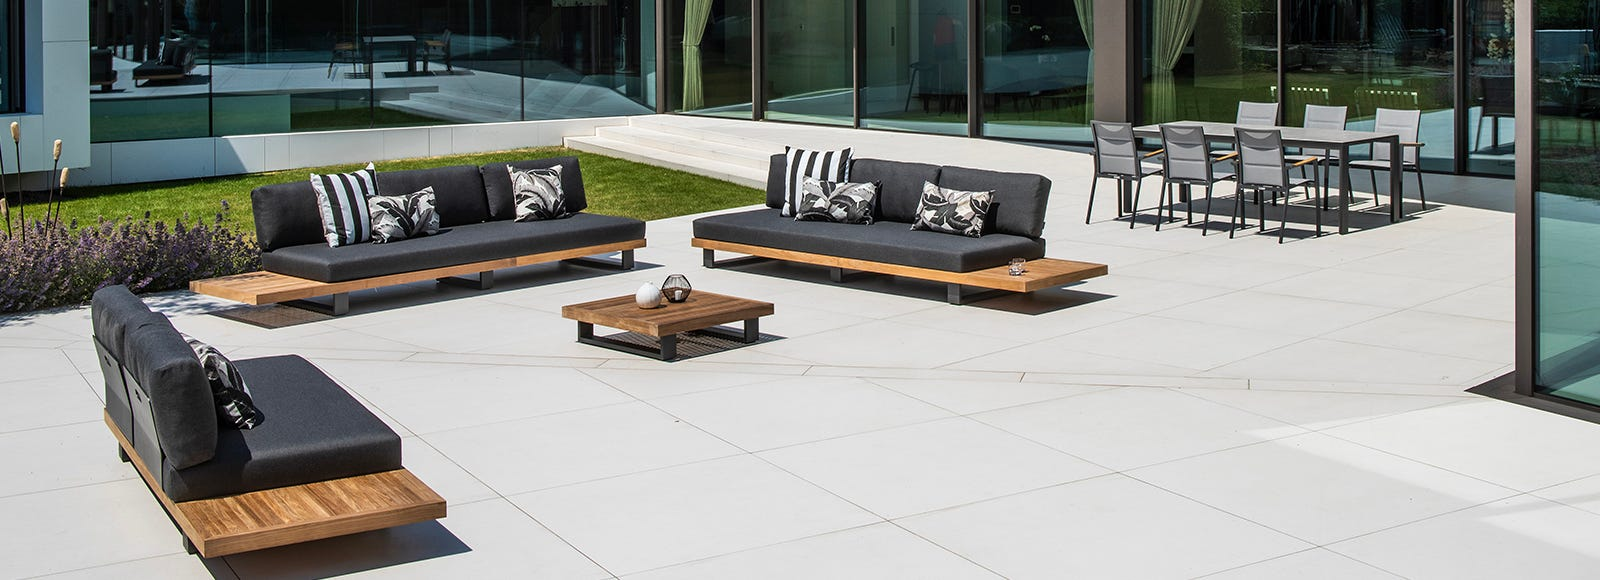 Outdoor Elegance About Us